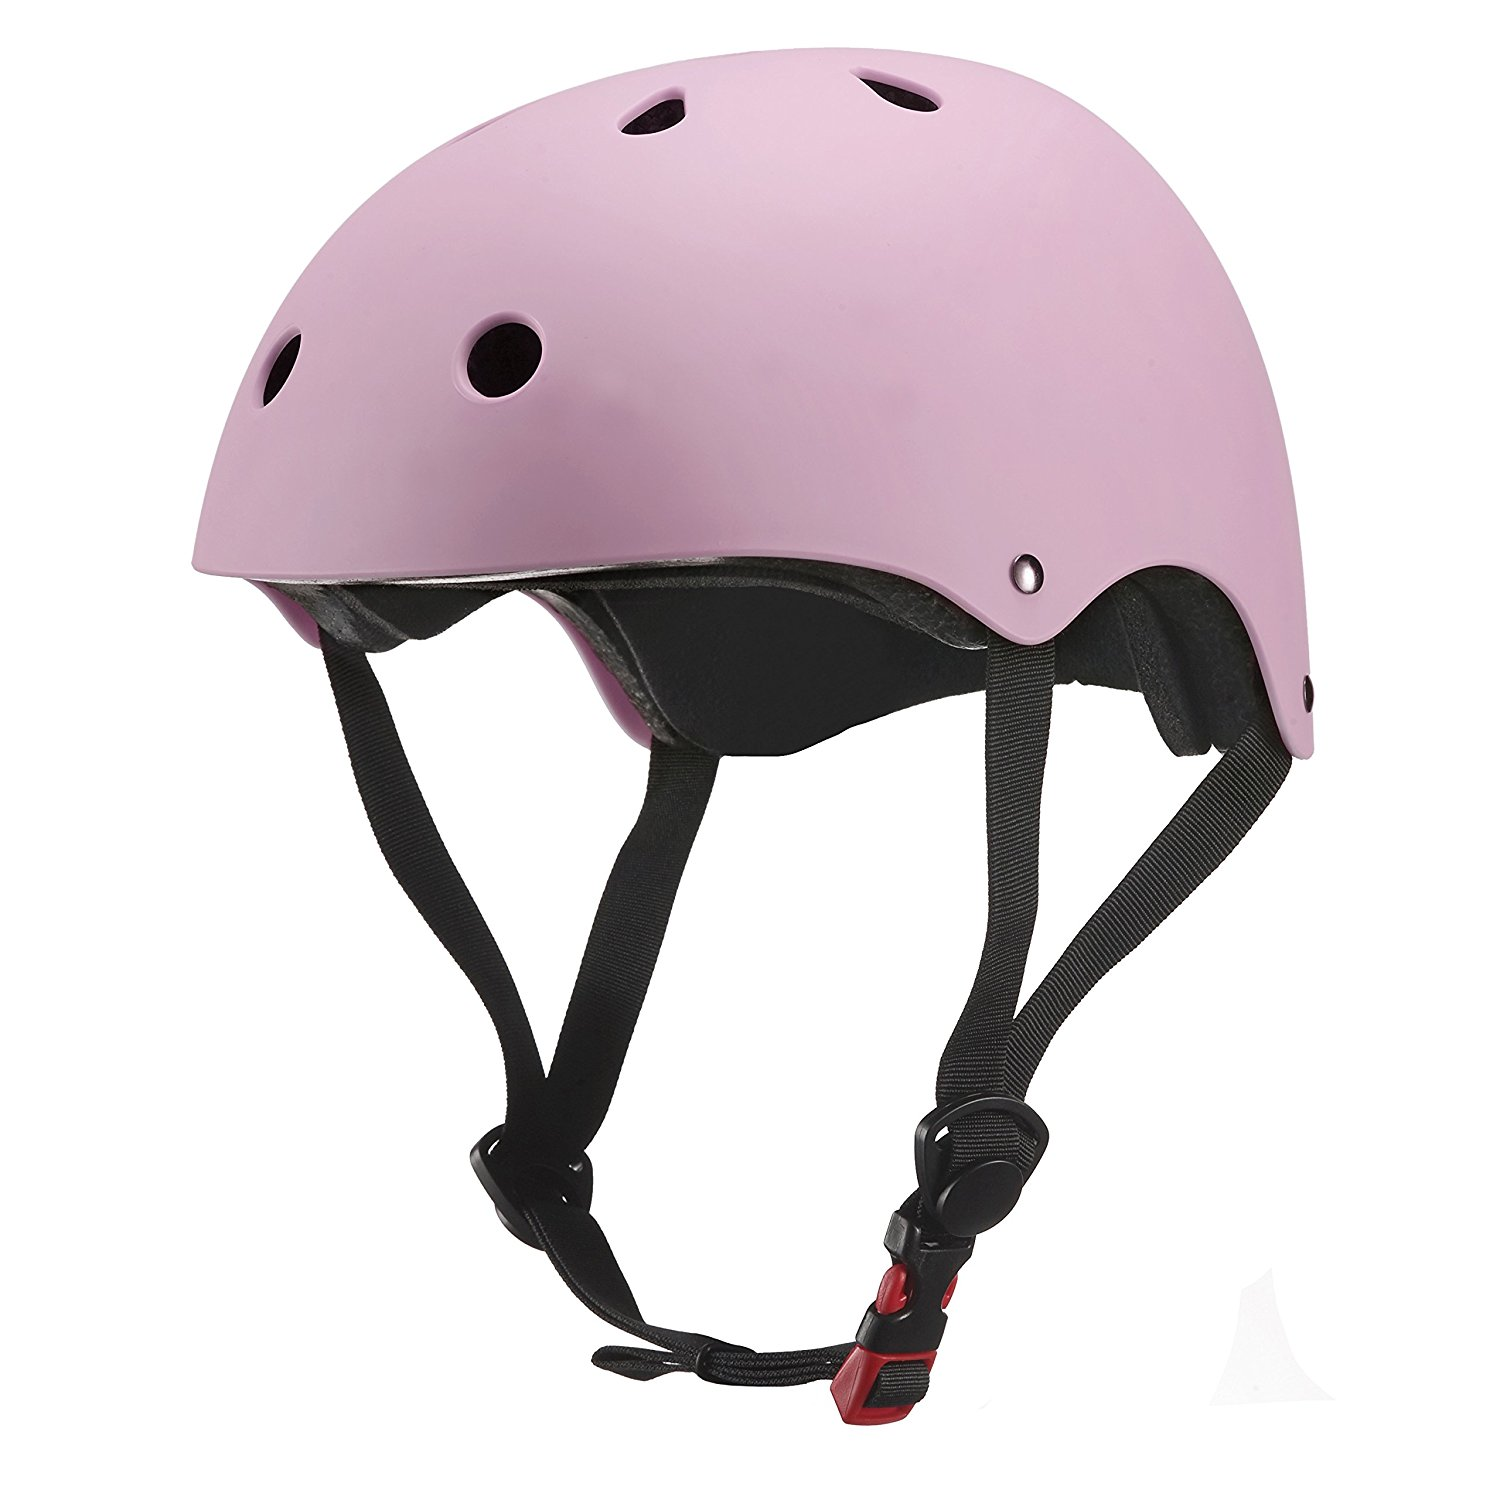 d220ba2dd14 Get Quotations · Dostar Kids Bike Helmet – Adjustable from Toddler to Youth  Size, Ages 3-10